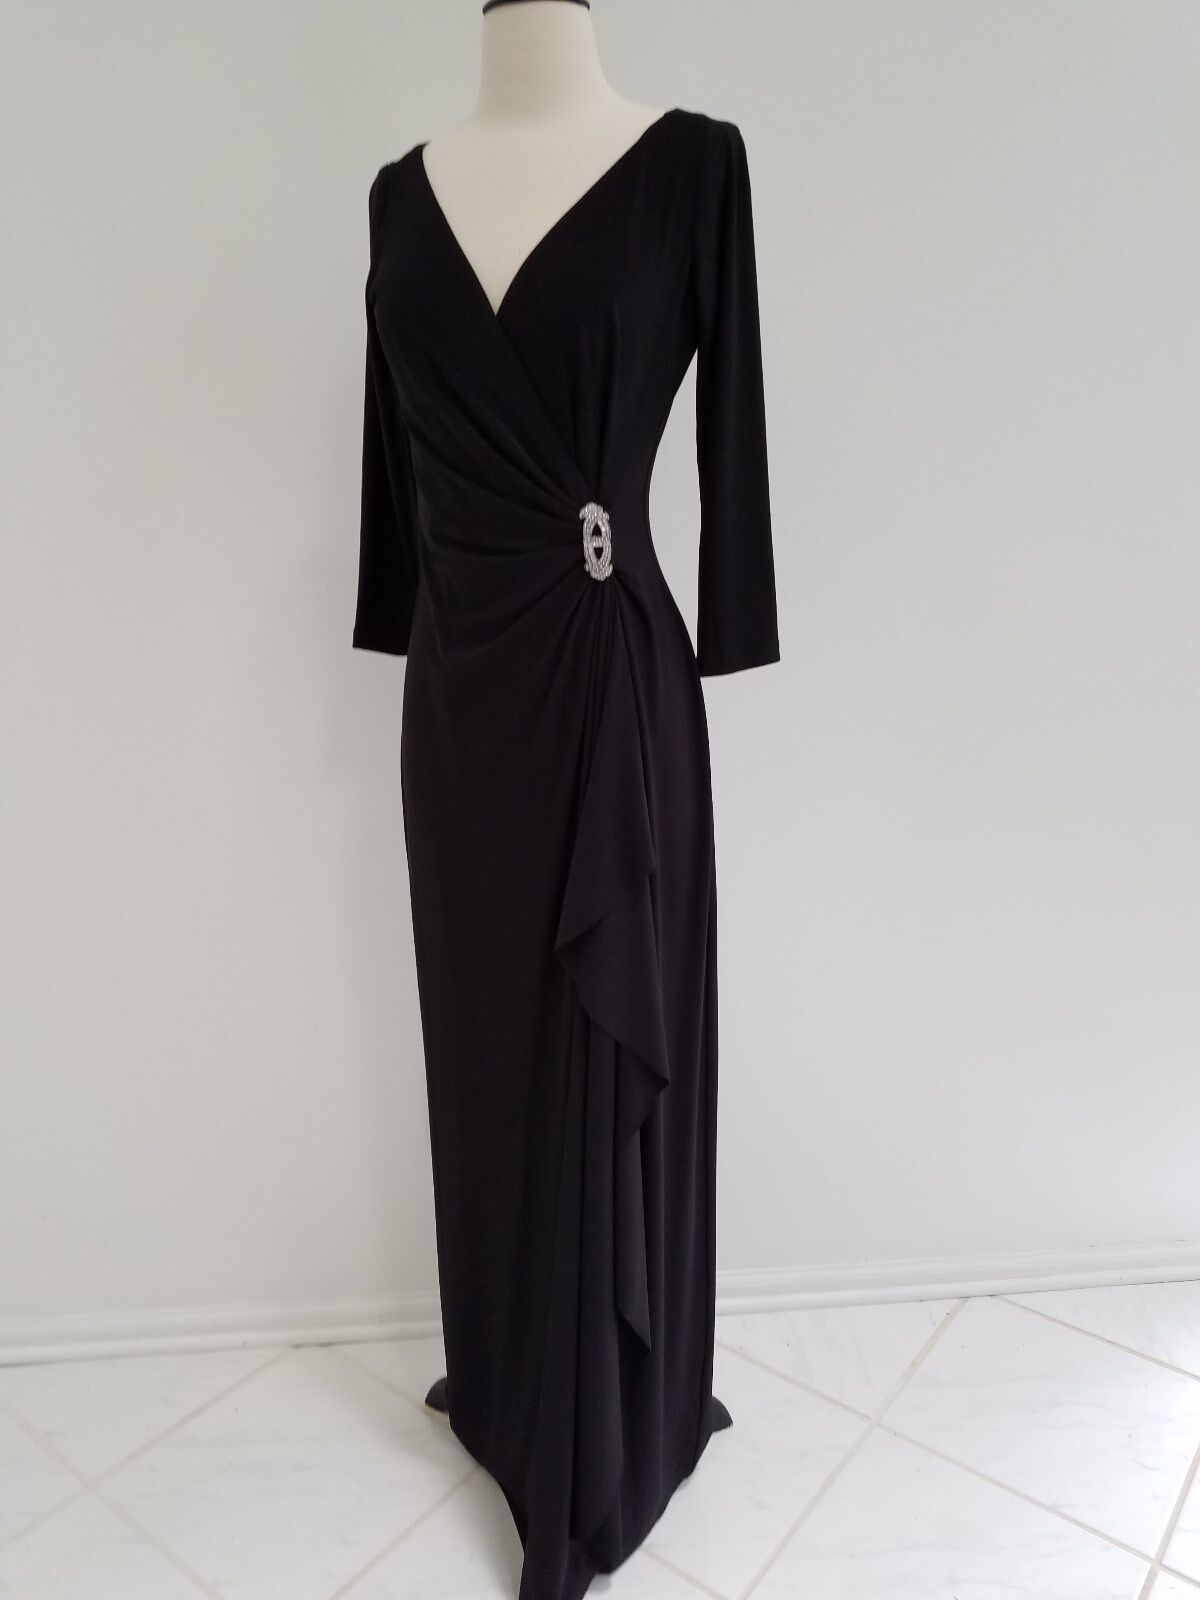 Evening party 3 4 sleeve schwarz maxi dress w crystal brooch,LaurenRal,s.4